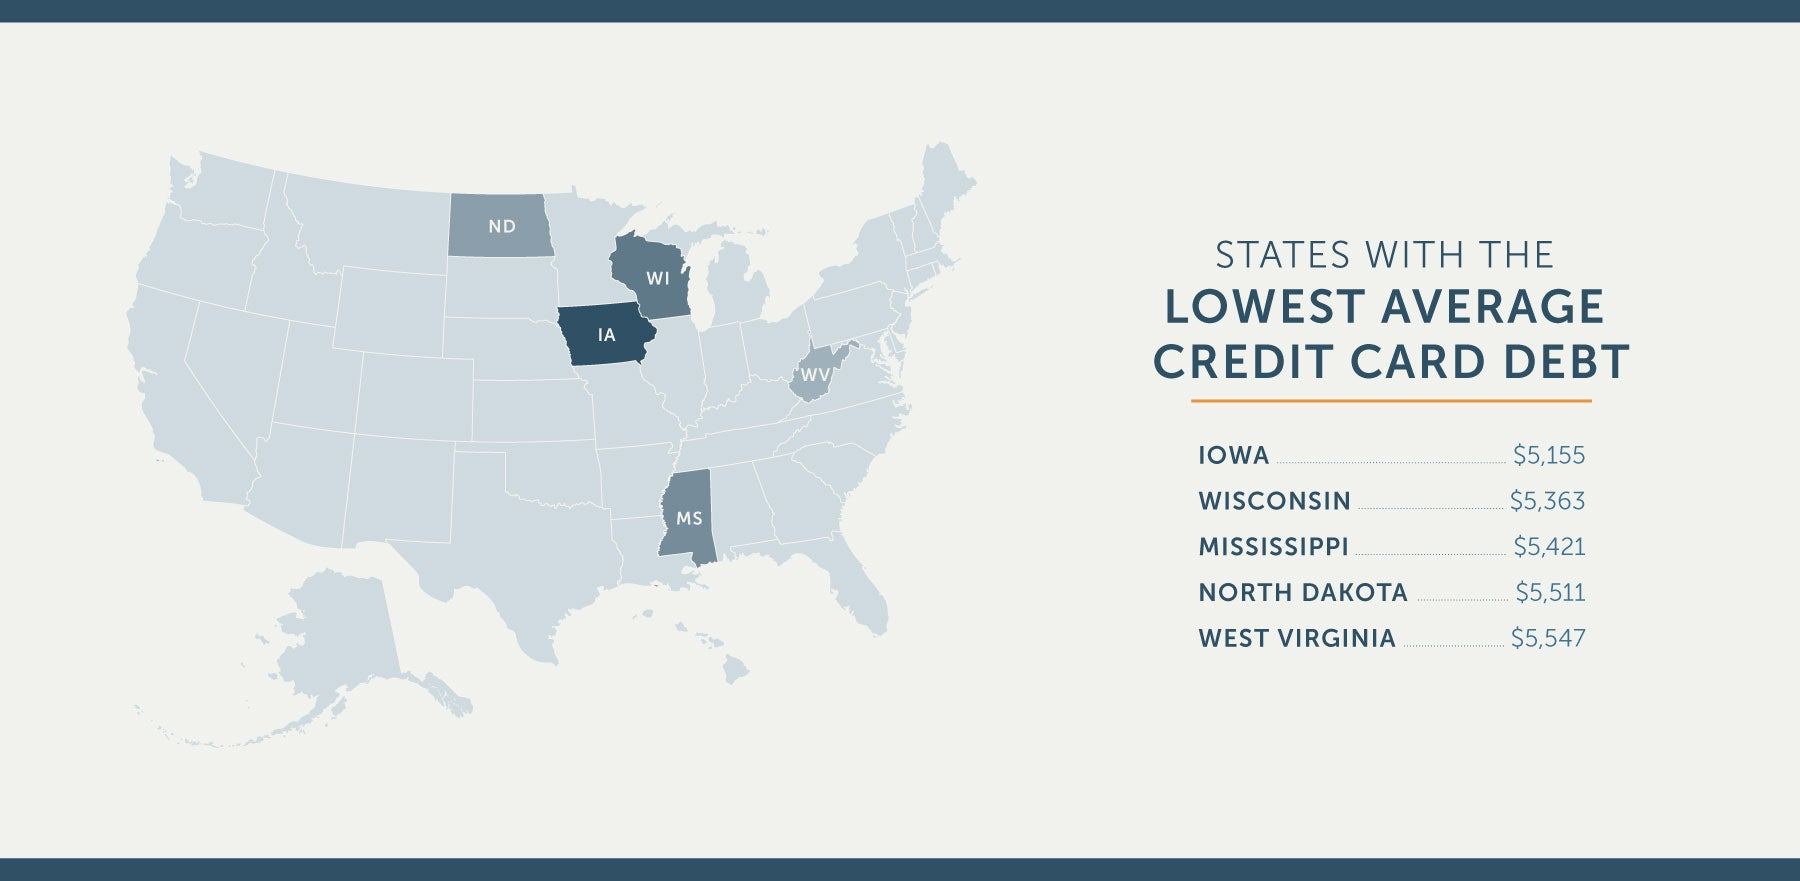 states in american with the lowest average credit card debt